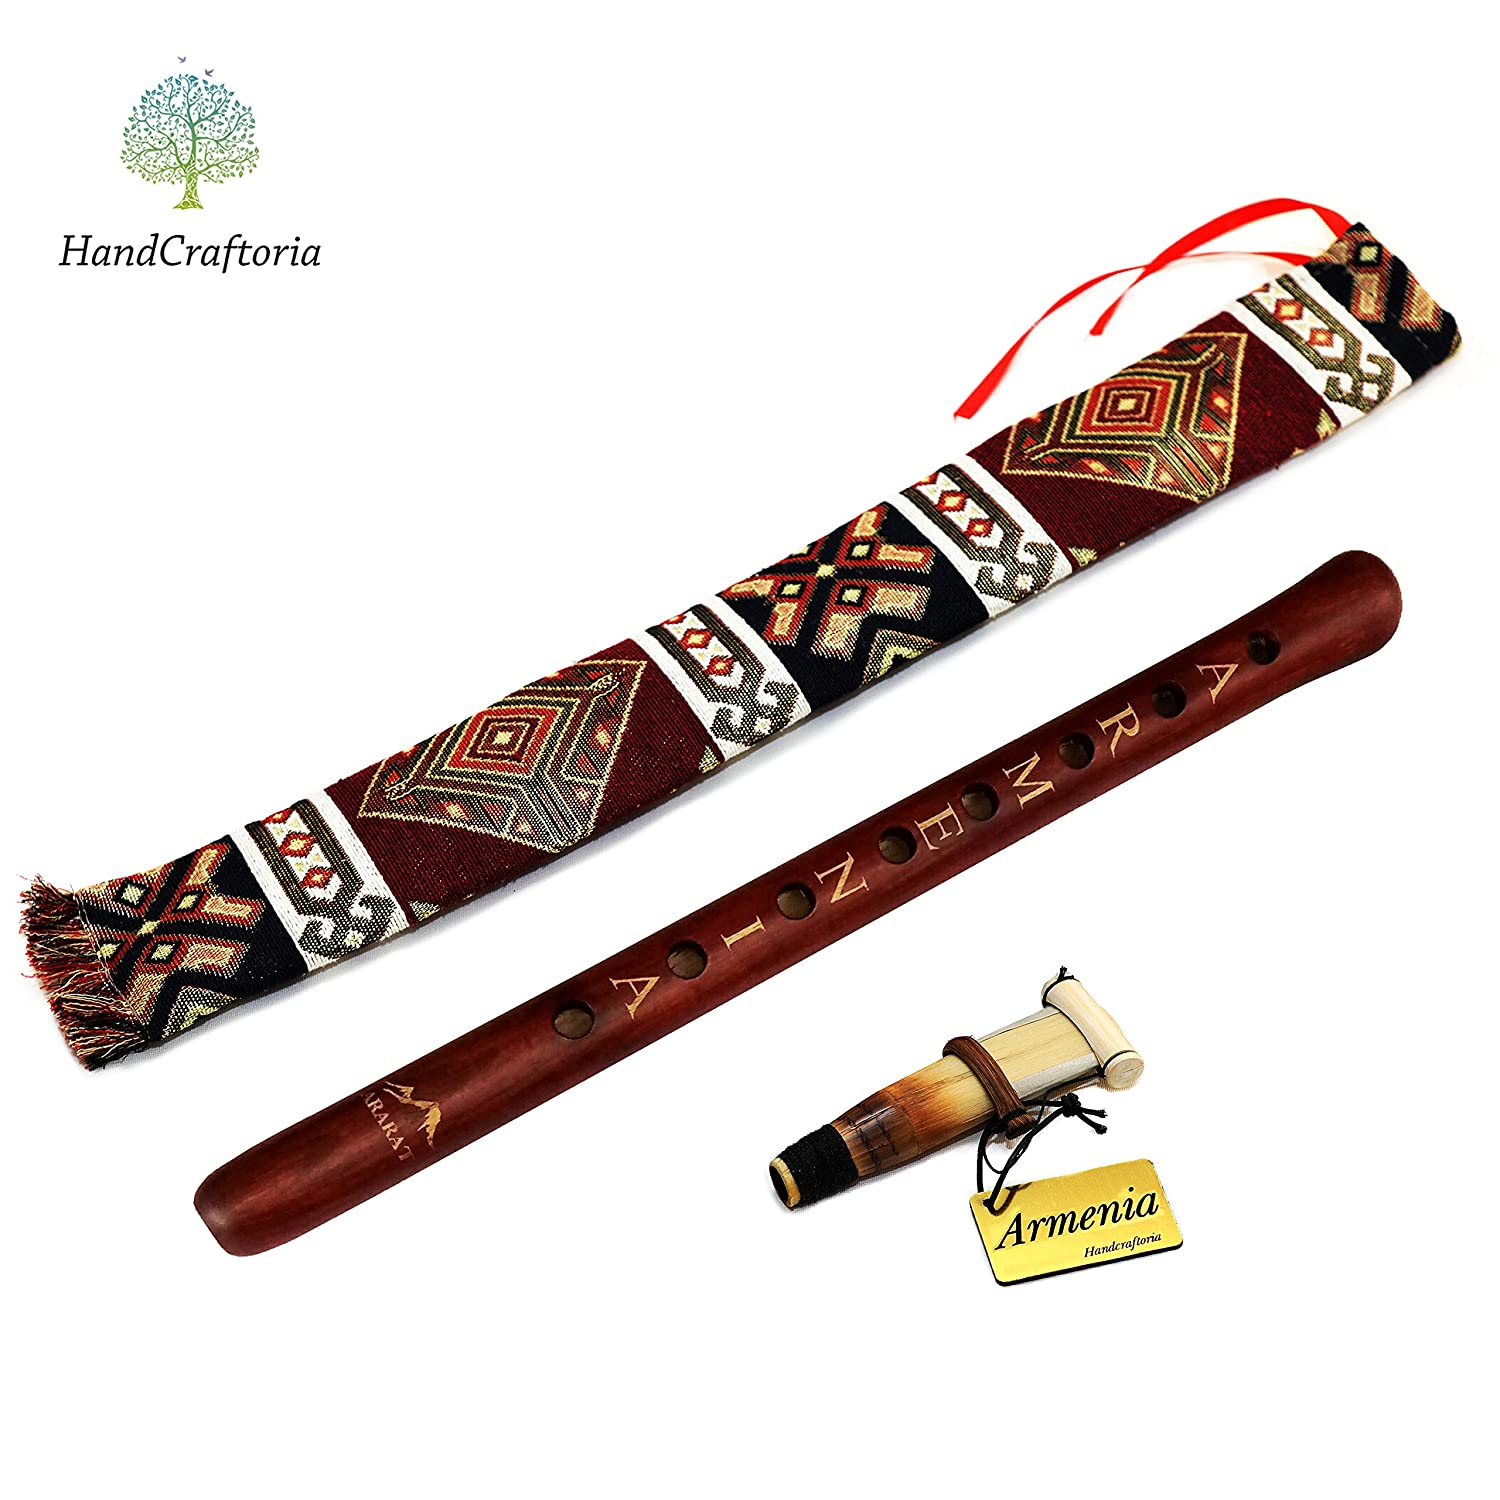 ARMENIAN DUDUK professional - handmade from ARMENIA - Oboe Balaban Woodwind Instrument Apricot Wood - Gift Armenian flute and National case - Playing Instruction Handcraftoria